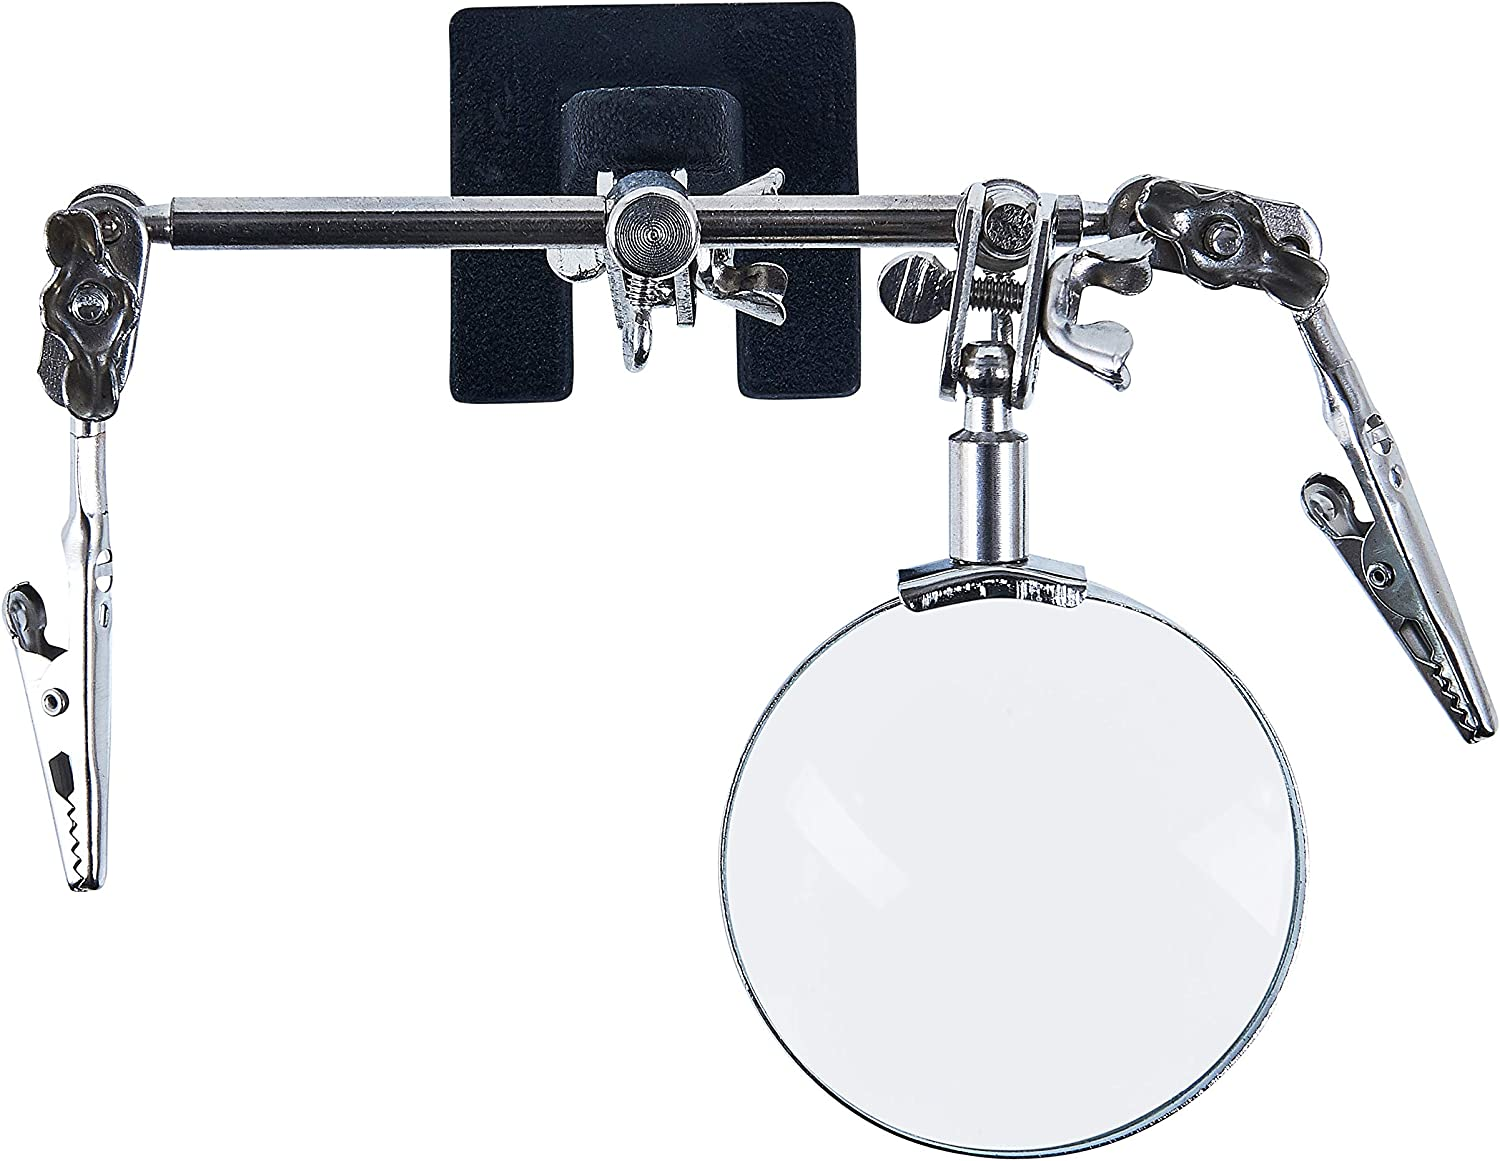 Amtech S2900 Helping Hand Magnifying Glass 60mm Transparent